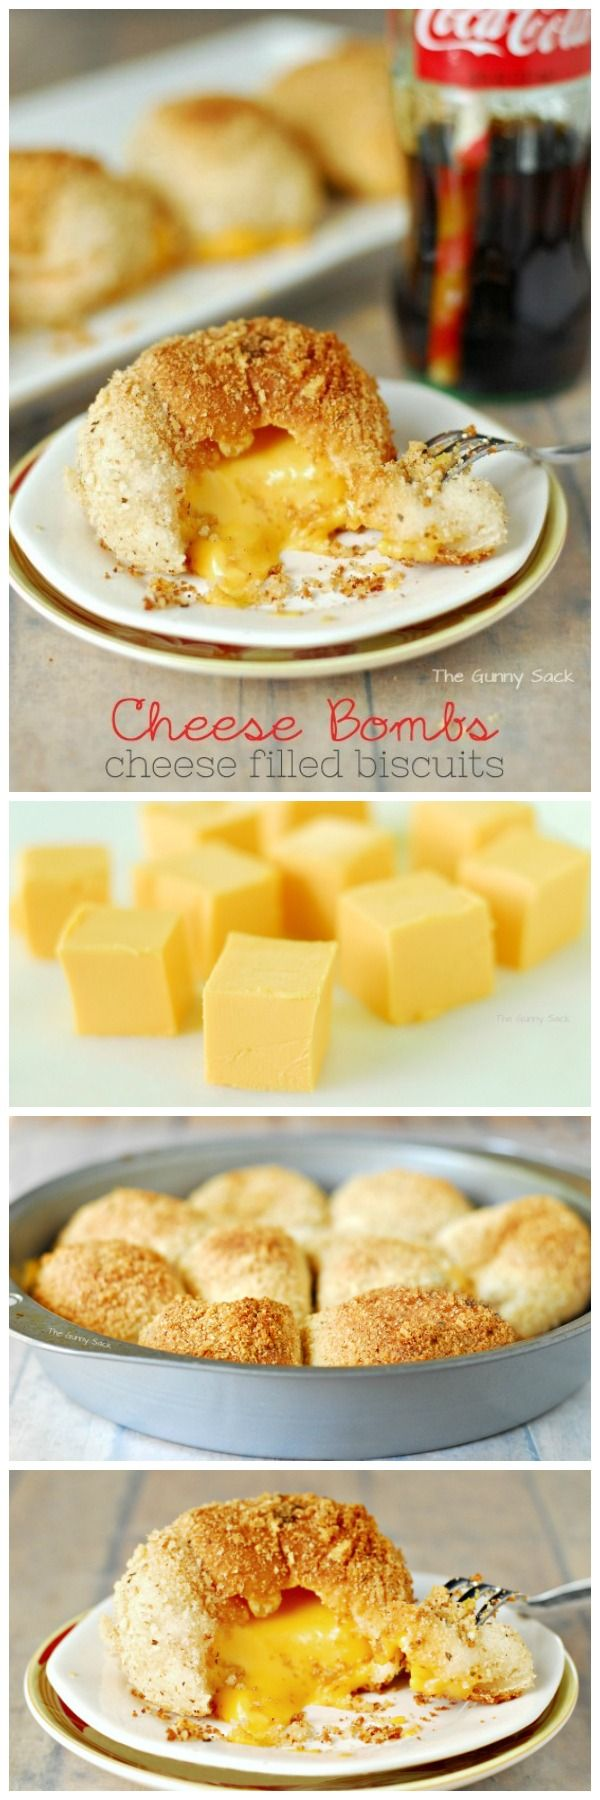 Cheese Bombs are cheese filled biscuits with a delicious, crunchy coating and warm, melted cheese on the inside!